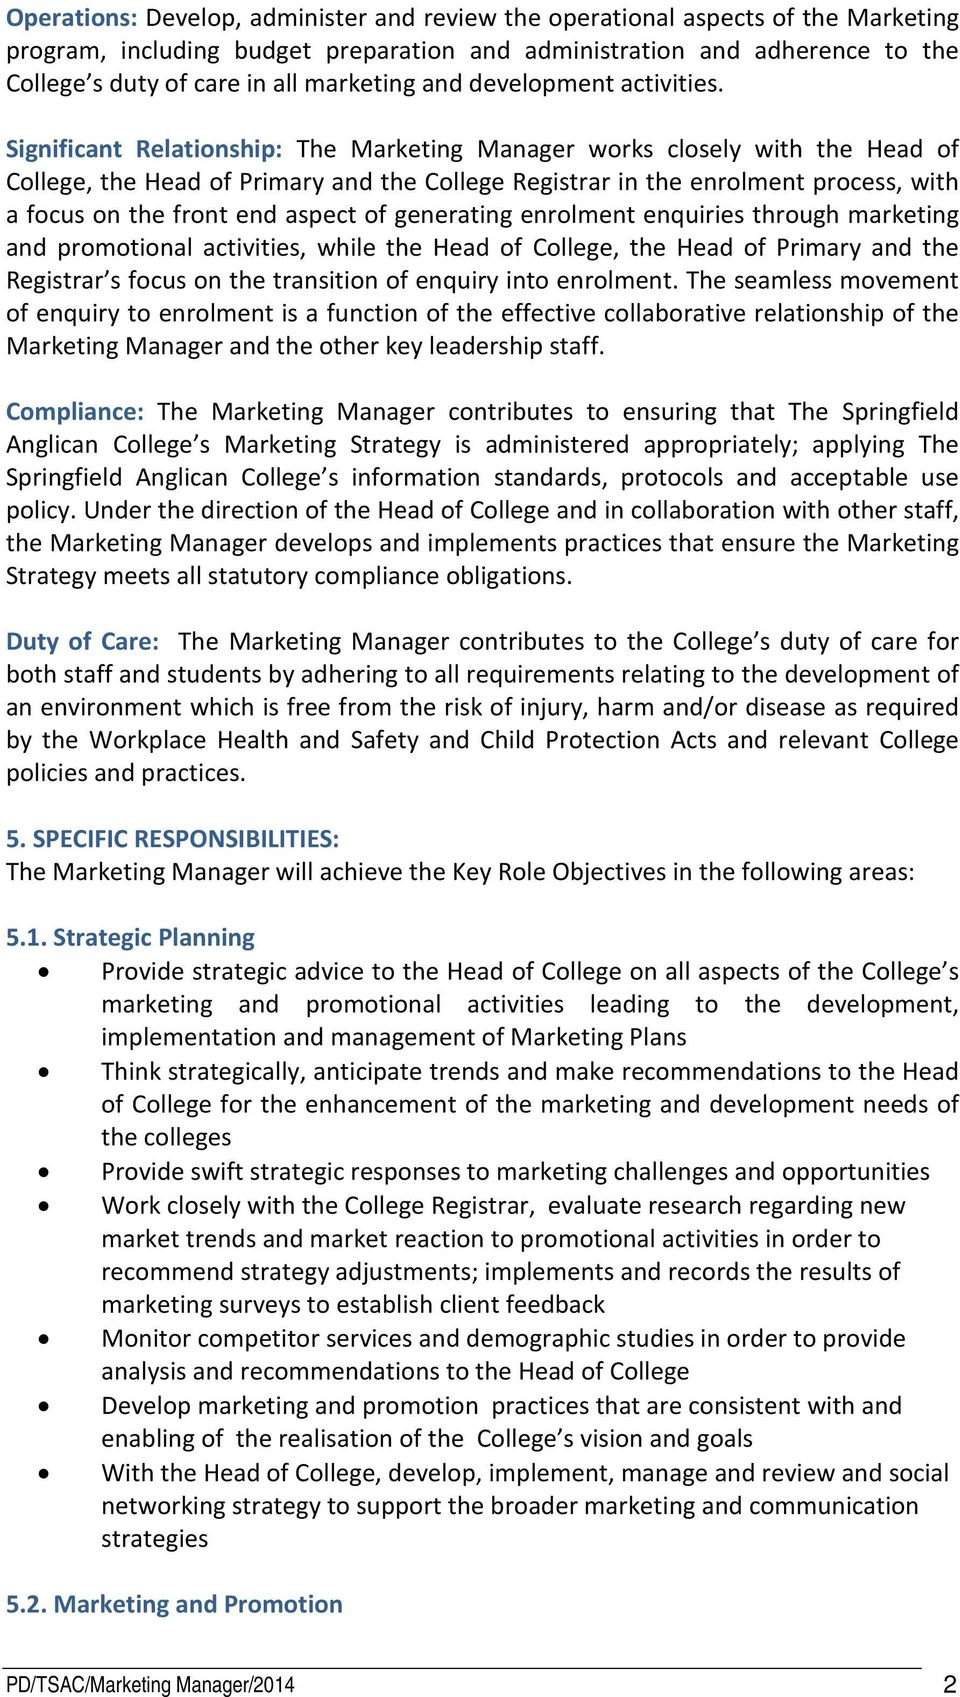 Significant Relationship: The Marketing Manager works closely with the Head of College, the Head of Primary and the College Registrar in the enrolment process, with a focus on the front end aspect of